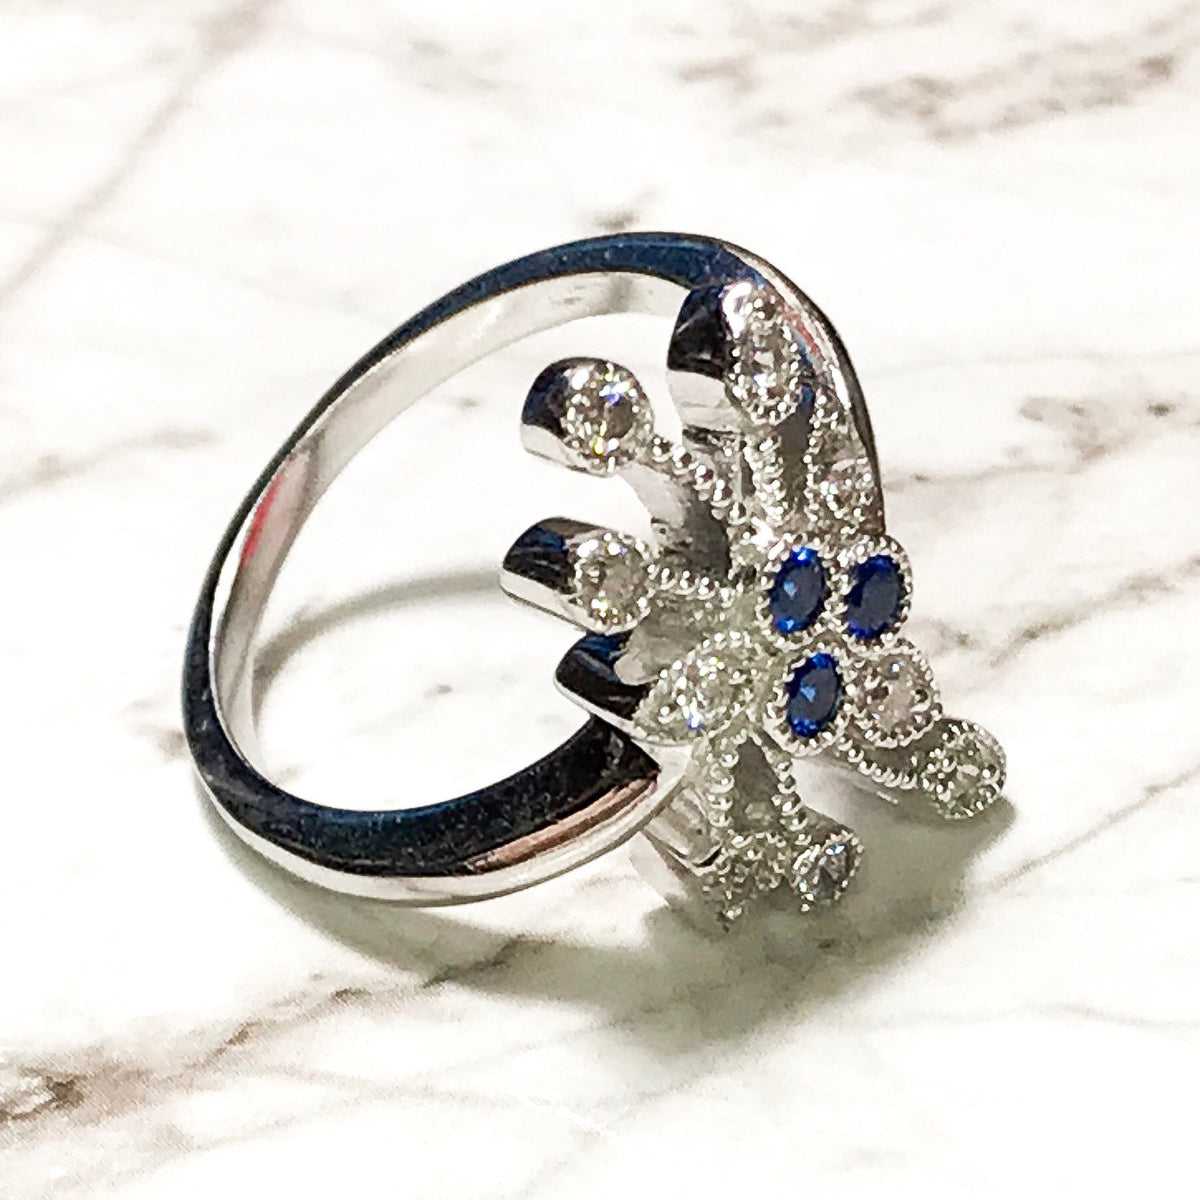 NEW 14K White Gold Layered on Sterling Silver Blue Floral Stones Ring